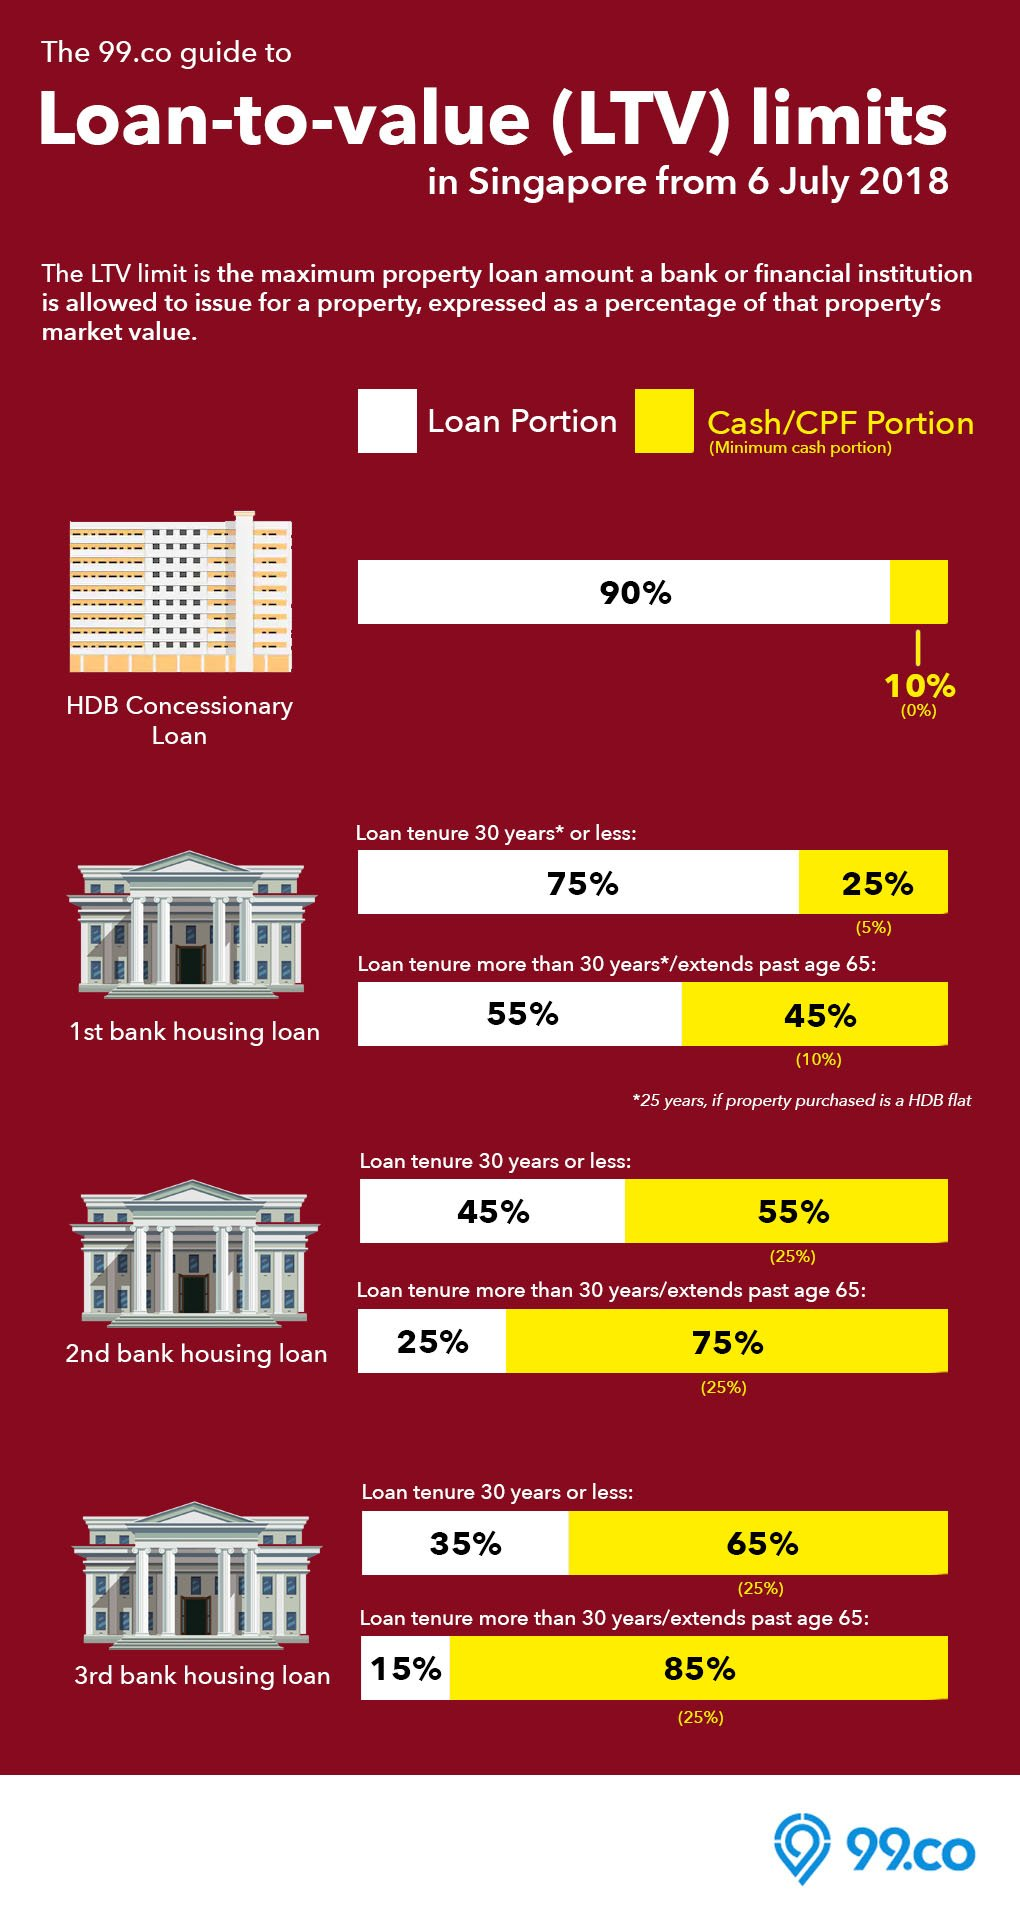 Loan-to-value LTV limit infographic